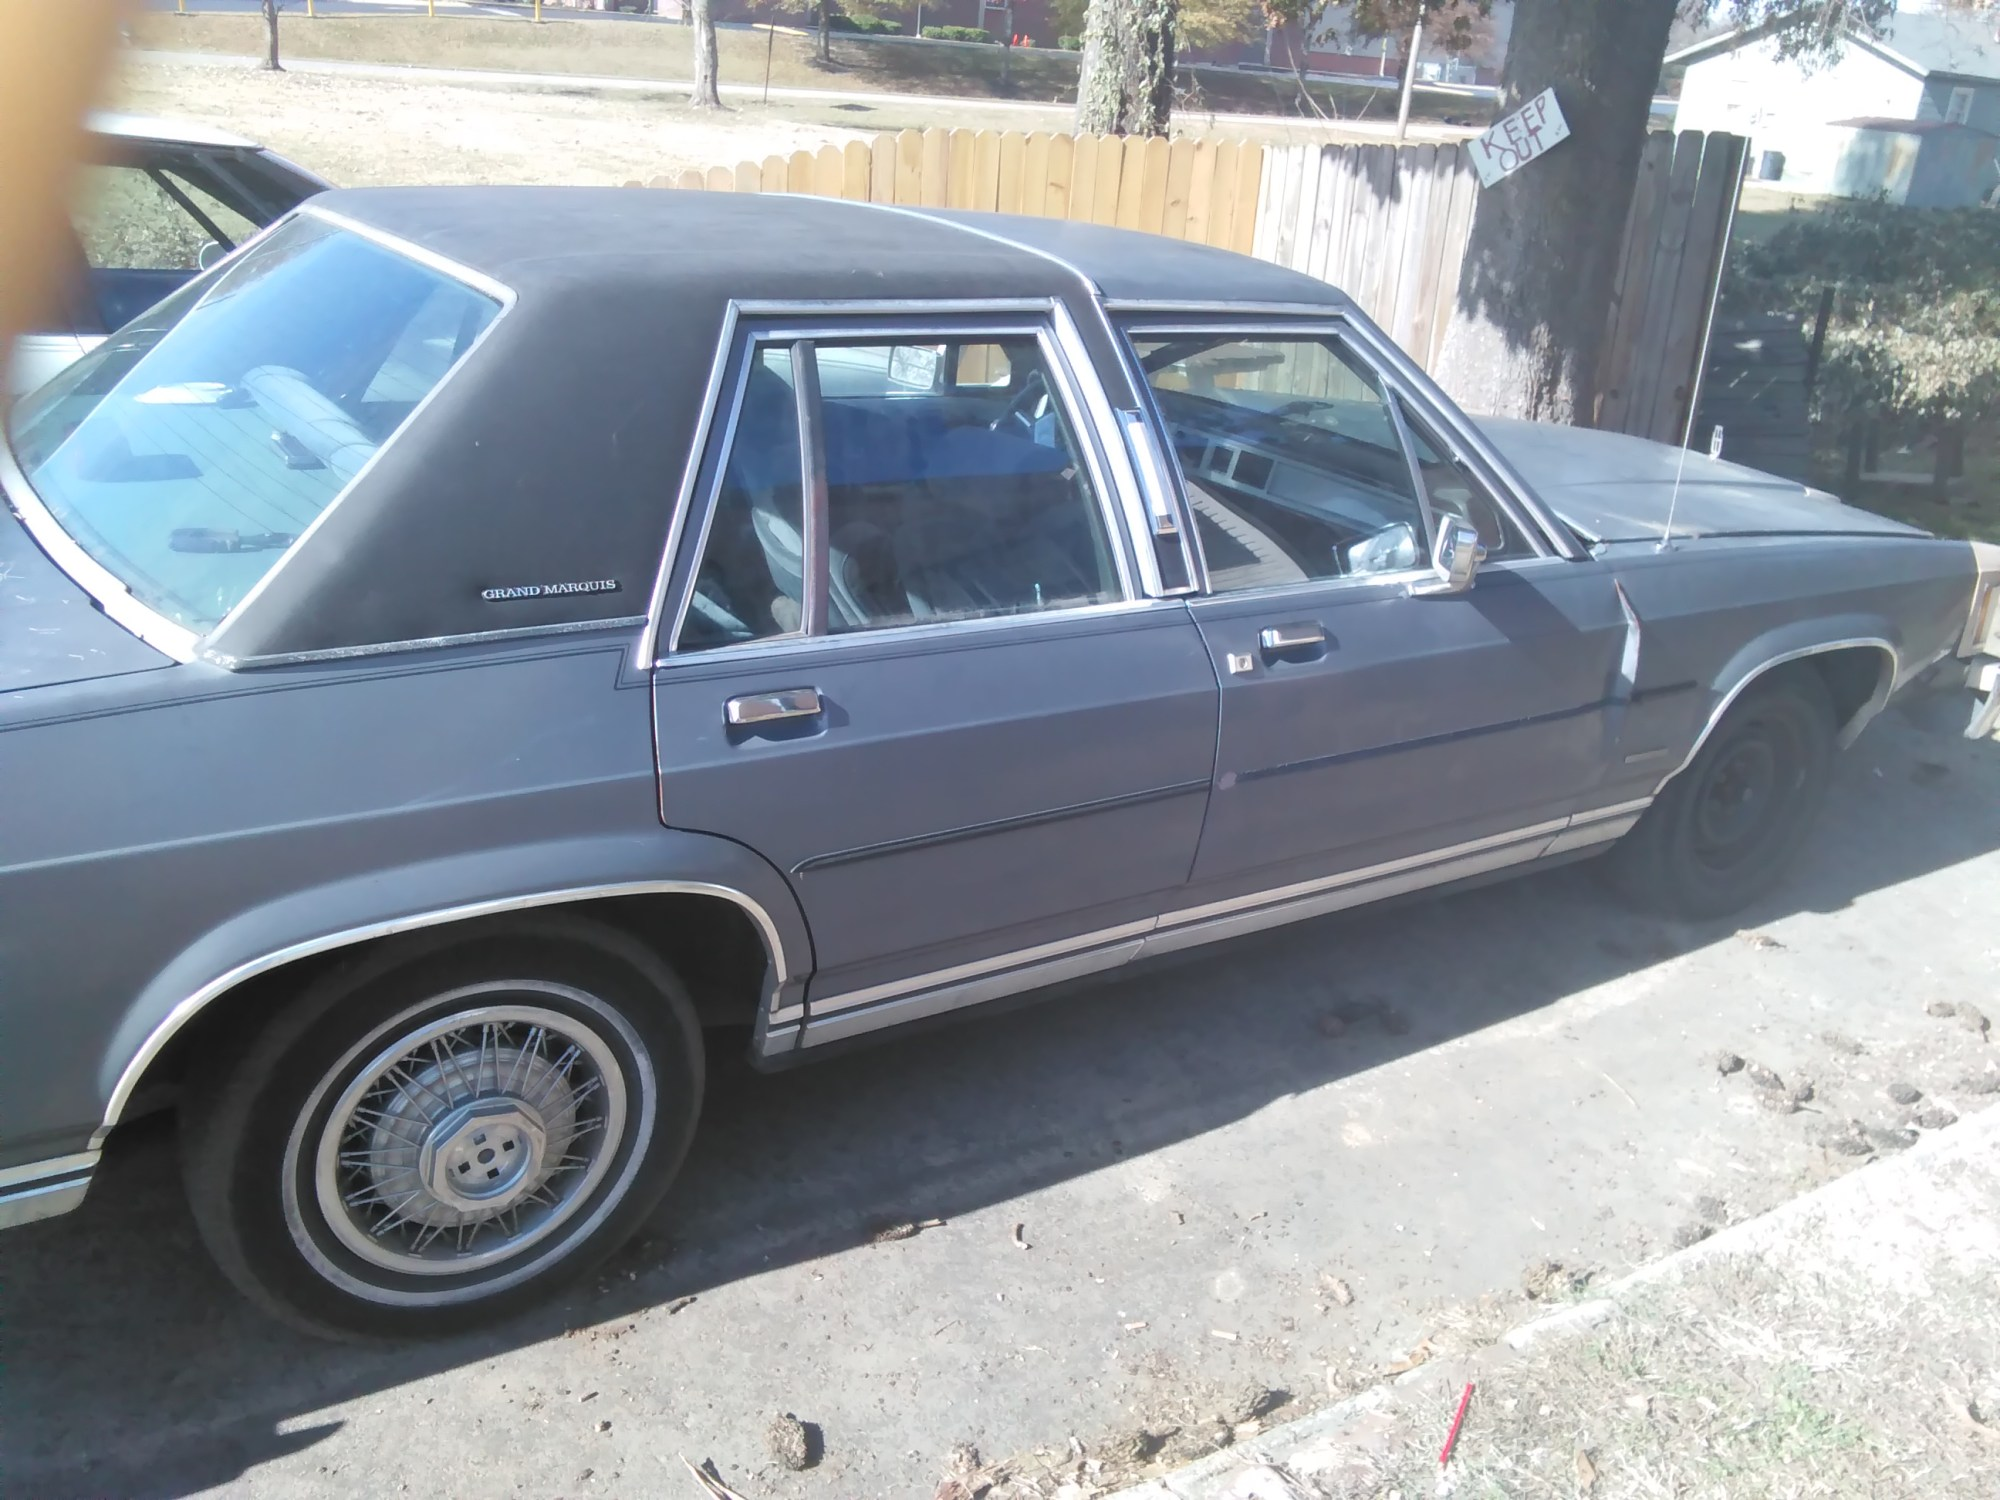 hight resolution of and articles for every turn in your grand archive forum discussions regarding the mercury grand marquis the fuel filter on a mercury grand marquis is on